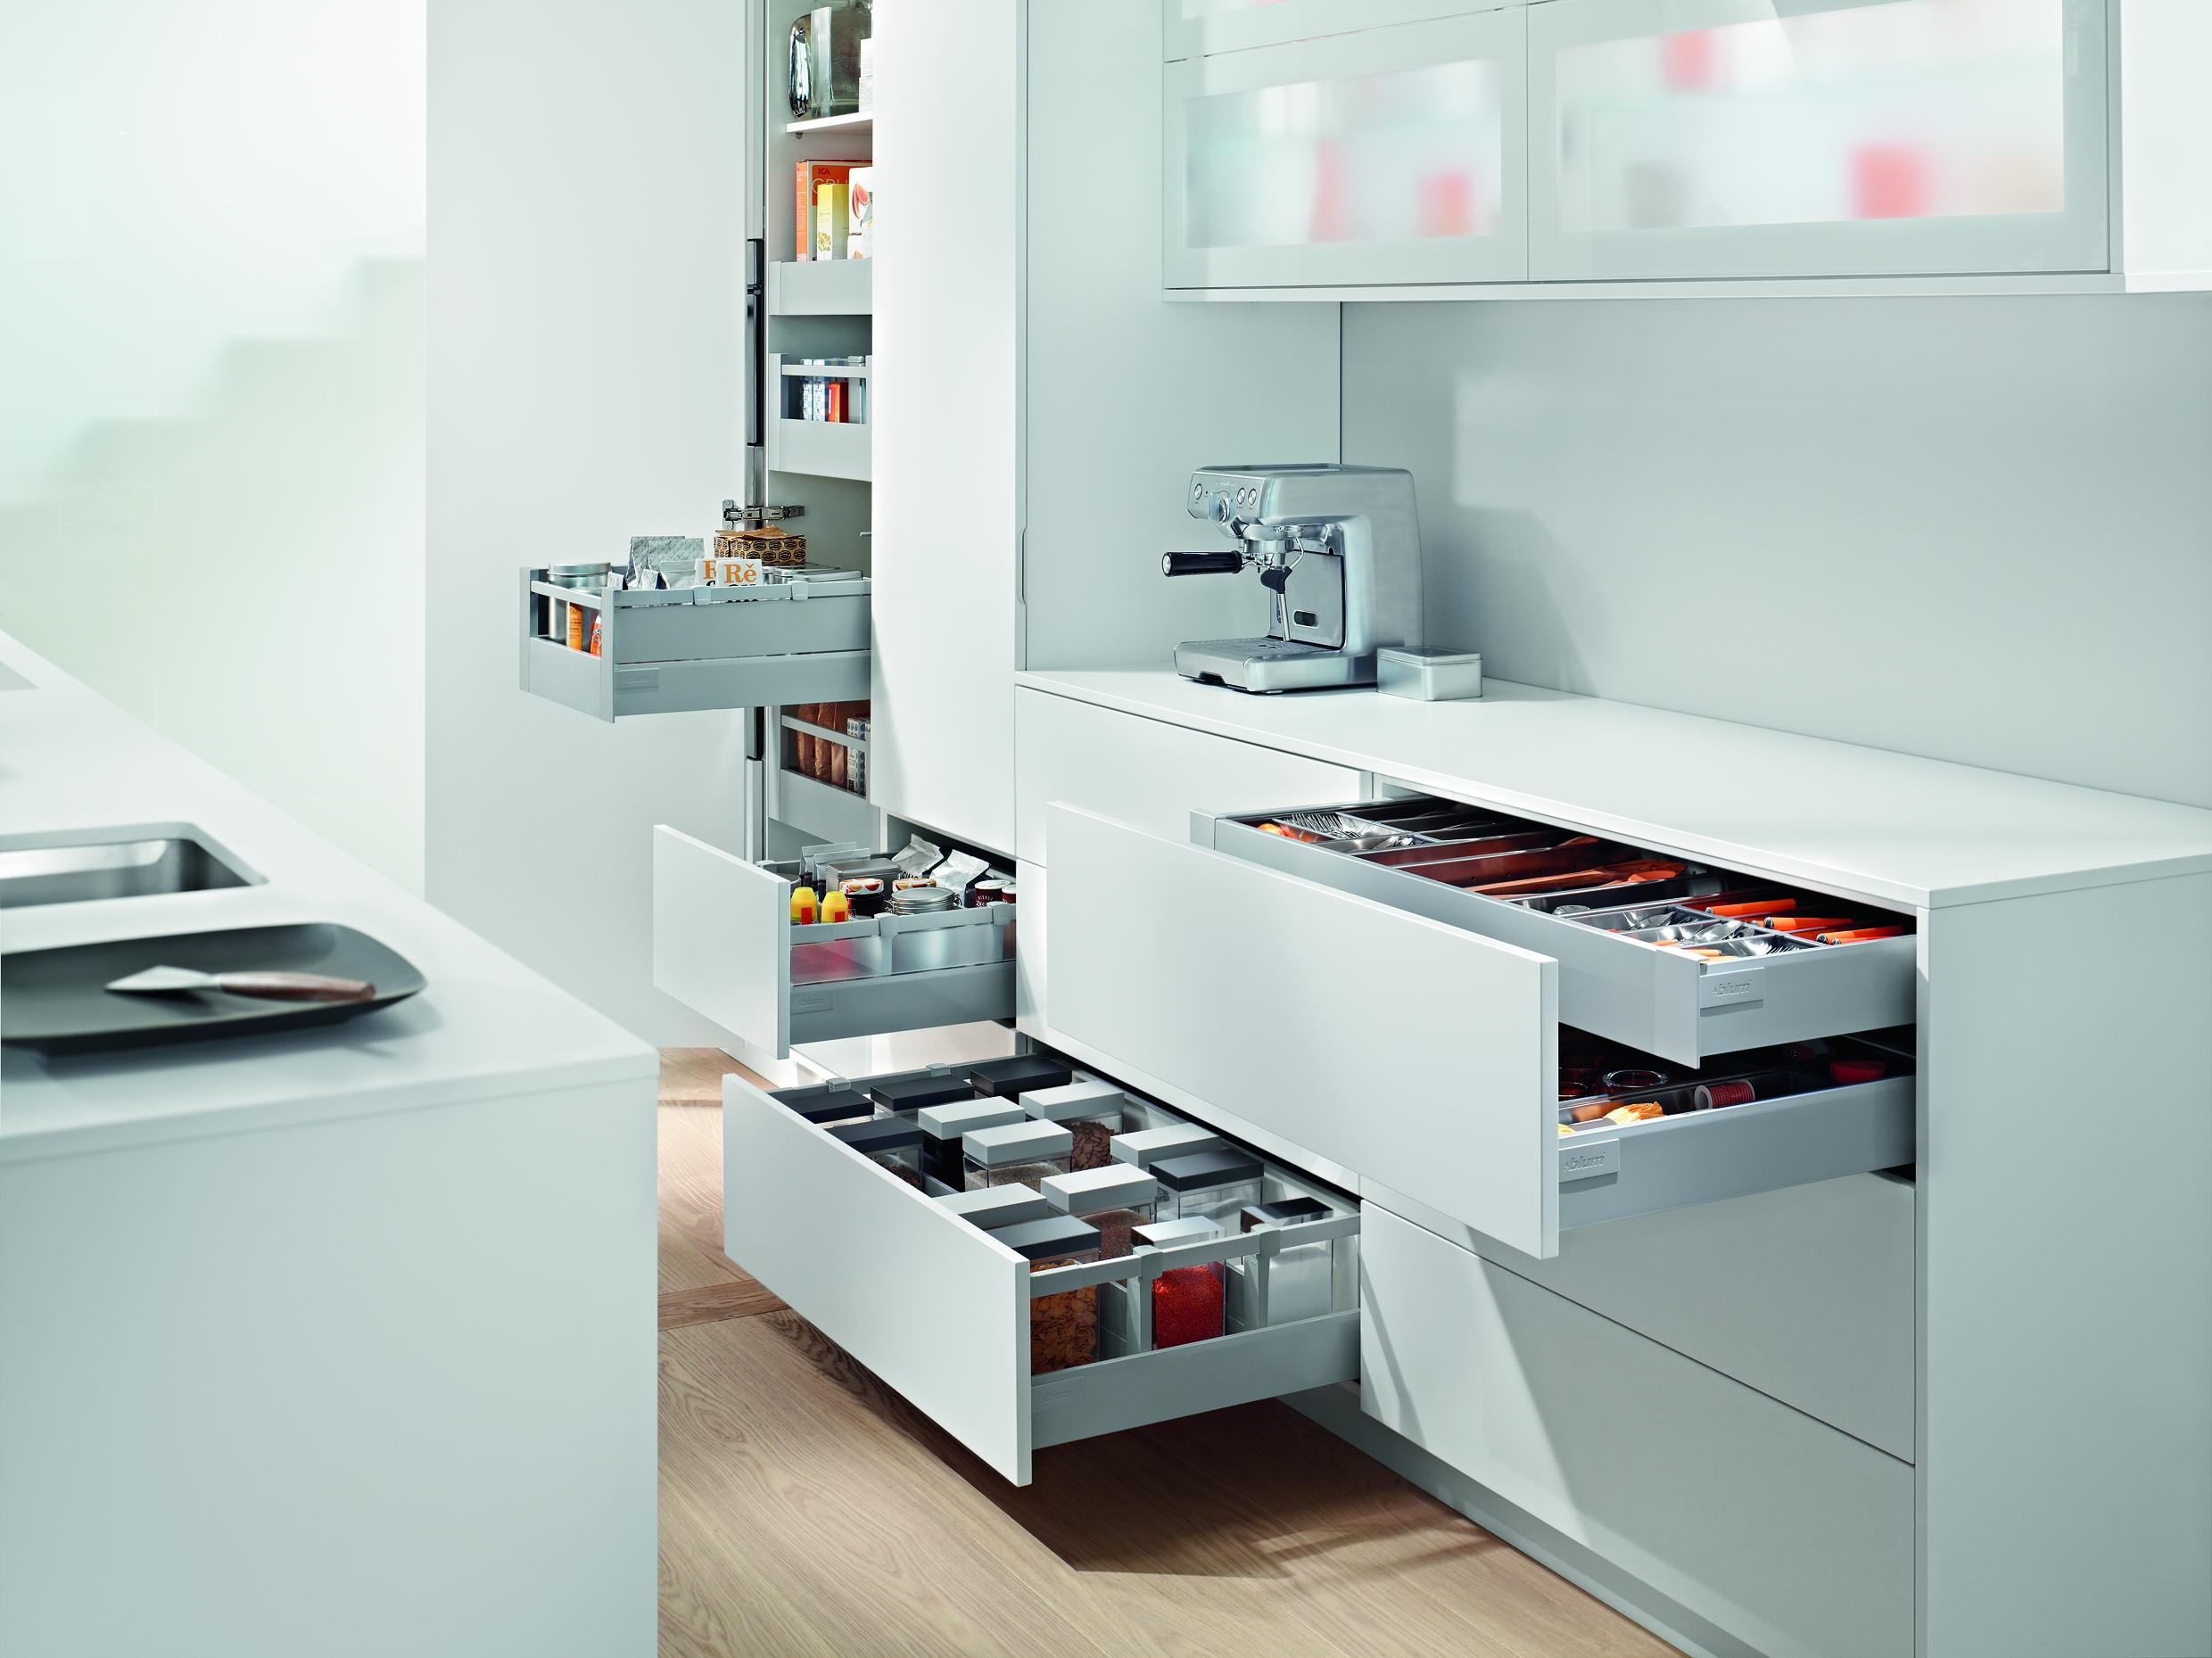 Blum meet a new audience at kbb for Kitchen upgrades